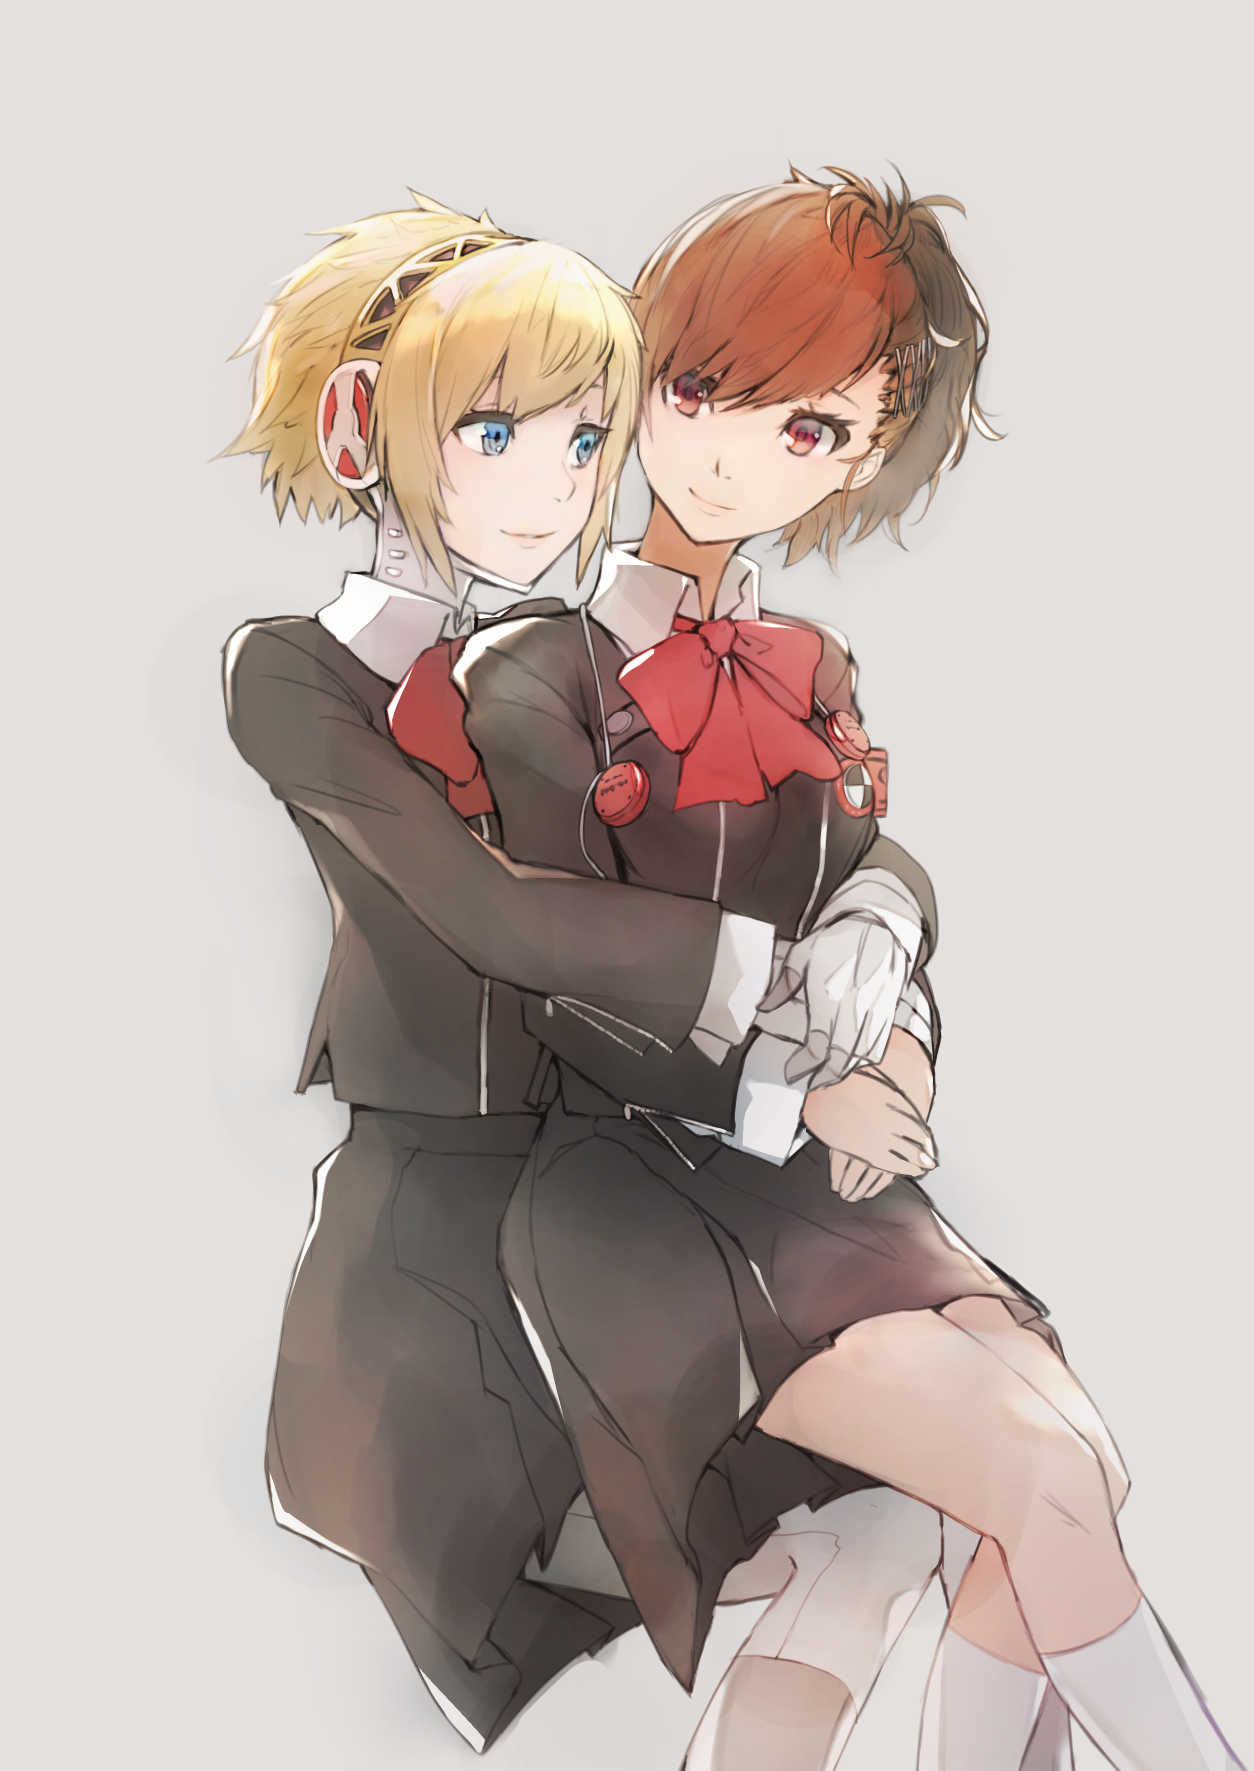 2girls aegis_(persona) bana_(stand_flower) black_jacket black_skirt blonde_hair blue_eyes bow bowtie brown_hair closed_mouth collared_shirt cute female_protagonist_(persona_3) grey_background hairband highres hug hug_from_behind human humanoid_robot invisible_chair jacket kneehighs long_sleeves megami_tensei miniskirt multiple_girls persona persona_3 red_bow red_eyes red_neckwear robot robot_girl shiomi_kotone shirt short_hair simple_background sitting sitting_on_lap sitting_on_person skirt smile tied_hair white_legwear white_shirt wing_collar yuri